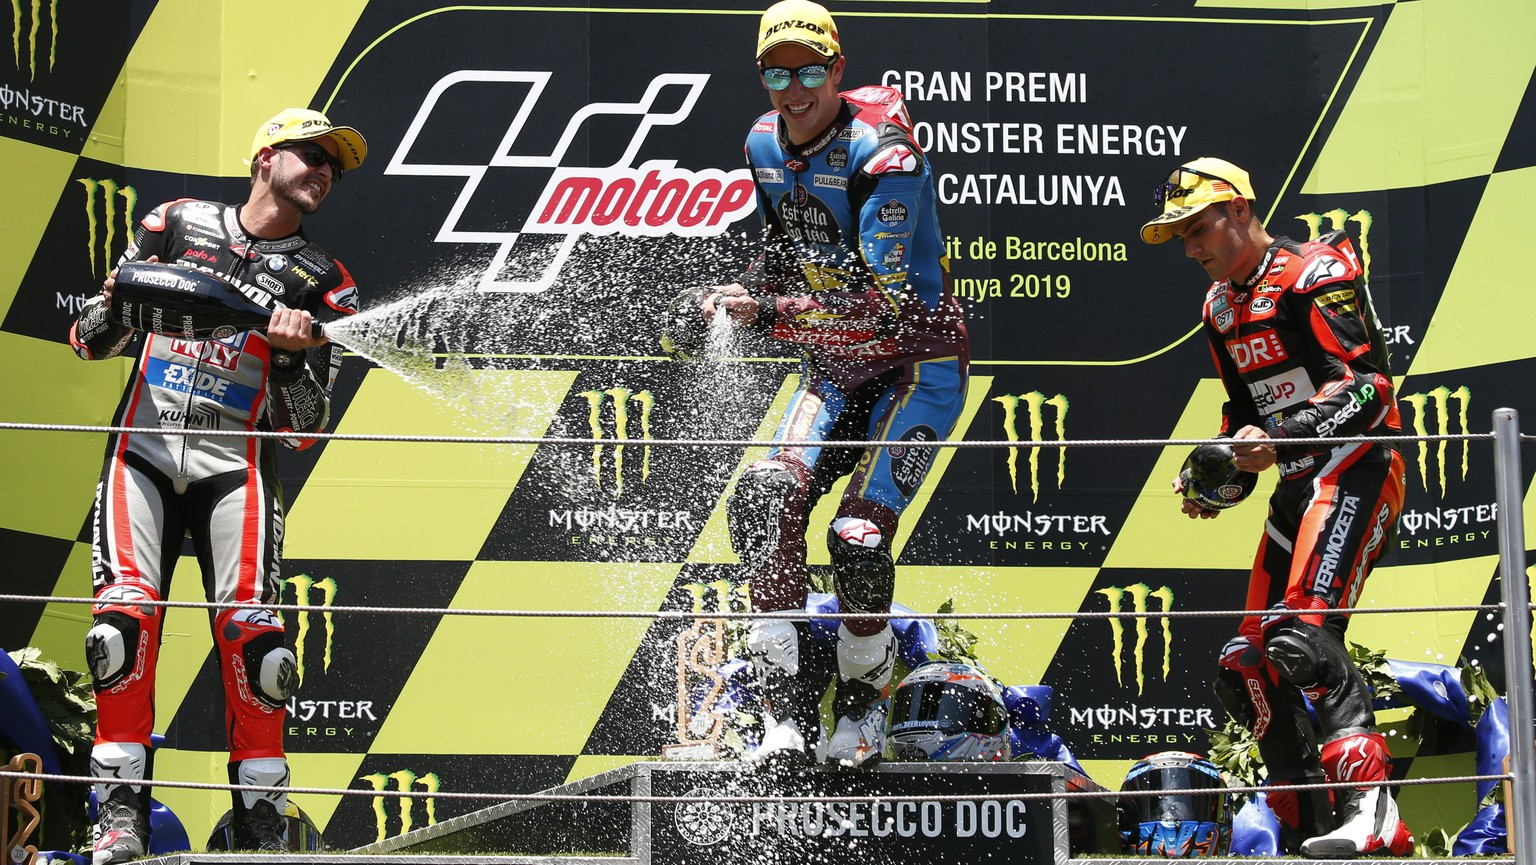 Moto2 race winner Alex Marquez of Spain, center, celebrates with 2nd placed Thomas Luthi of Switzerland, left and 3rd placed Jorge Navarro of Spain during the Catalunya Motorcycle Grand Prix at the Barcelona Catalunya racetrack in Montmelo, near Barcelona, Spain, on Sunday June 16, 2019. (AP Photo/Joan Monfort)